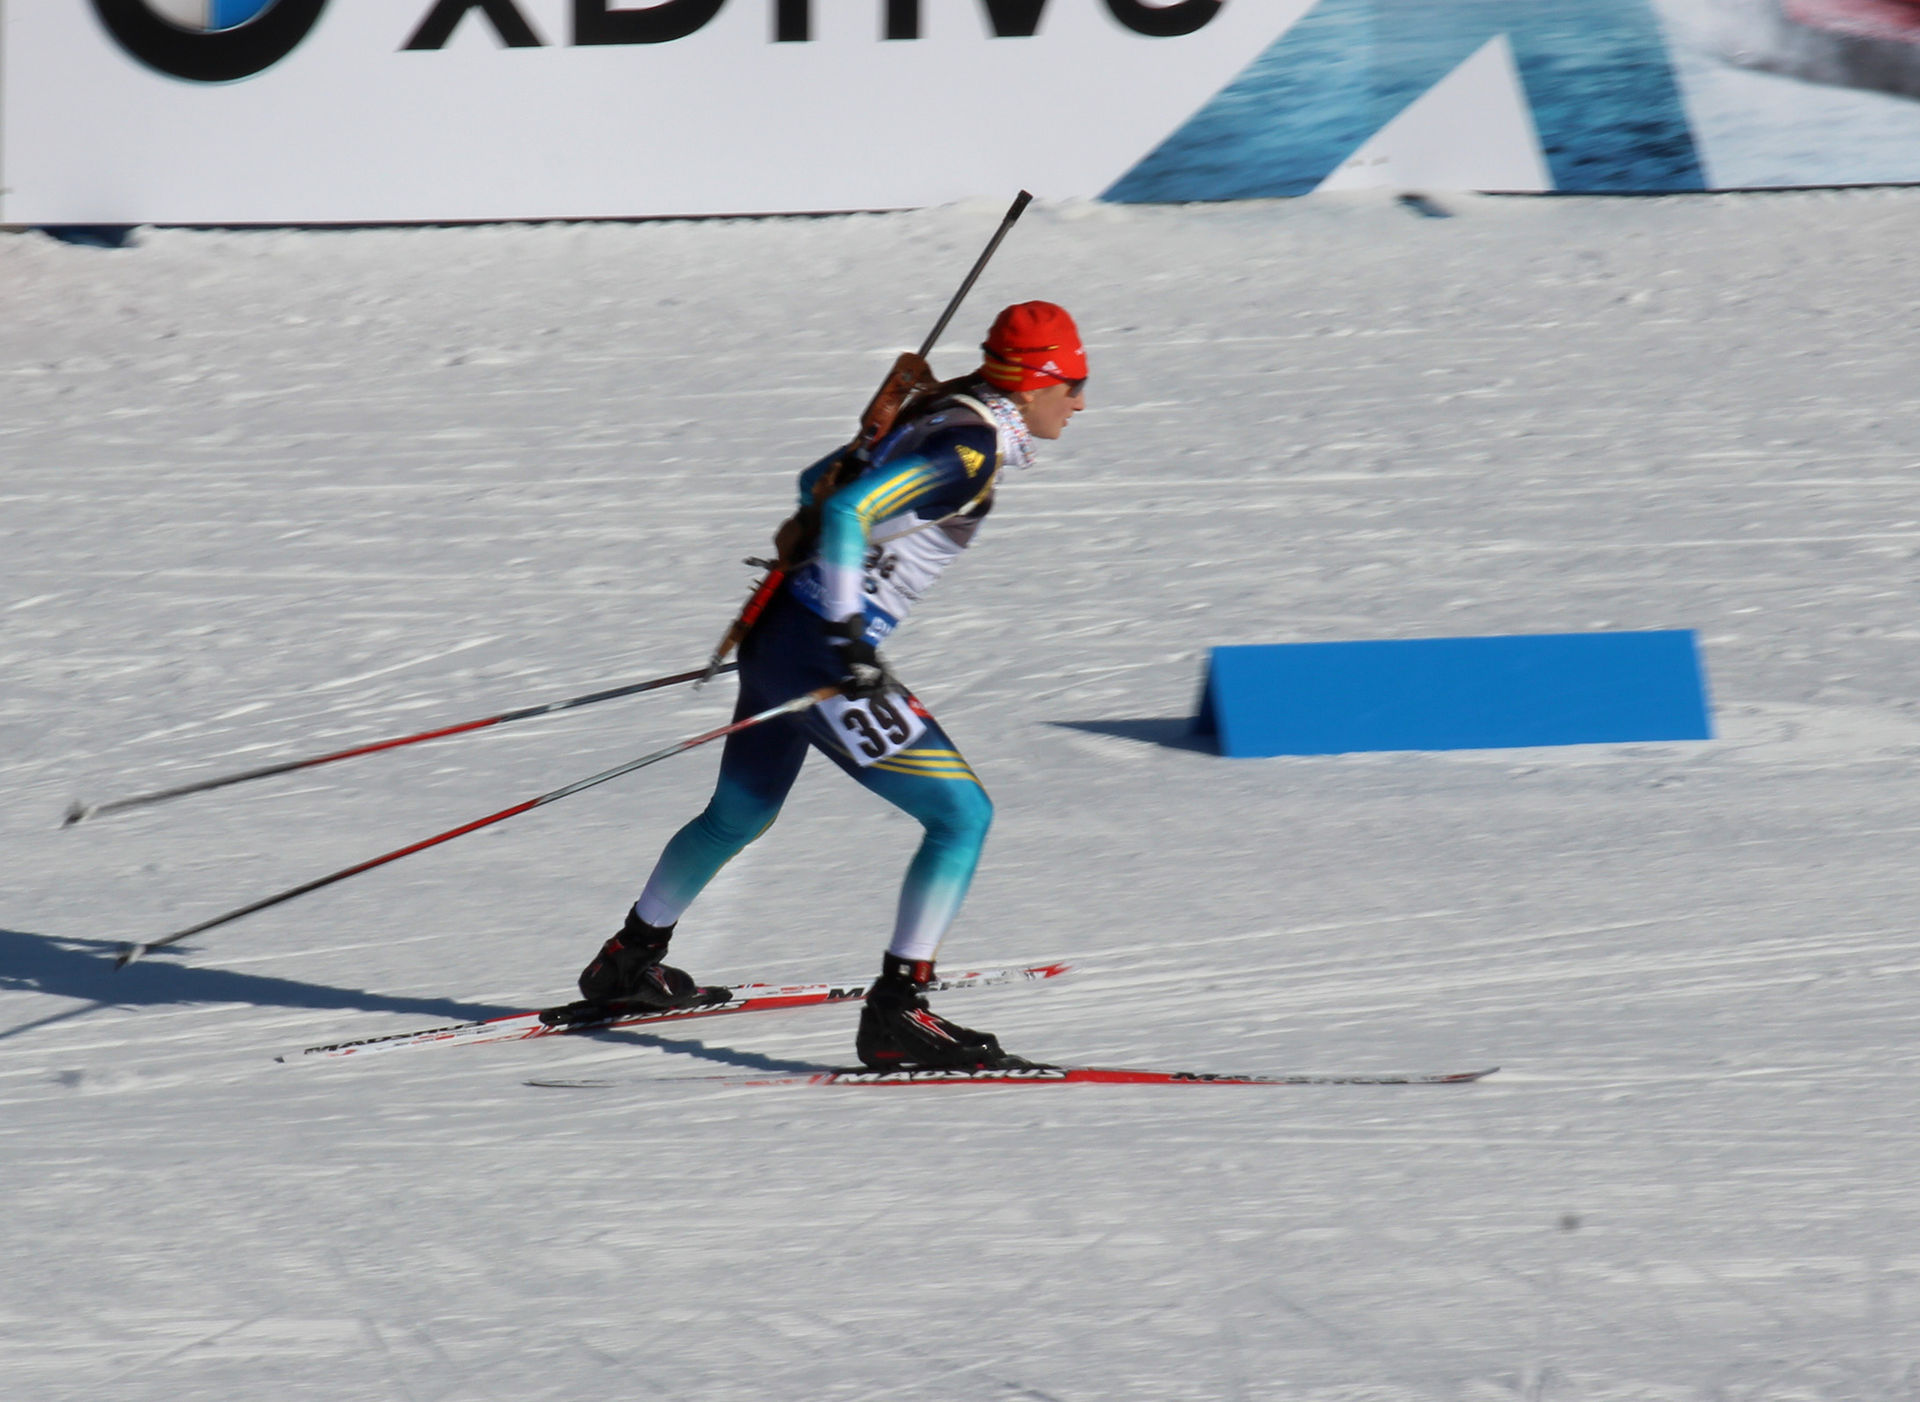 Olga Abramova competing at the World Cup in Nove Mesto in 2015. She says that she stopped taking meldonium before January 1, 2016, even though it showed up in her urine sample in January. (Photo: Pavel Hrdlička/Wikipedia Commons)